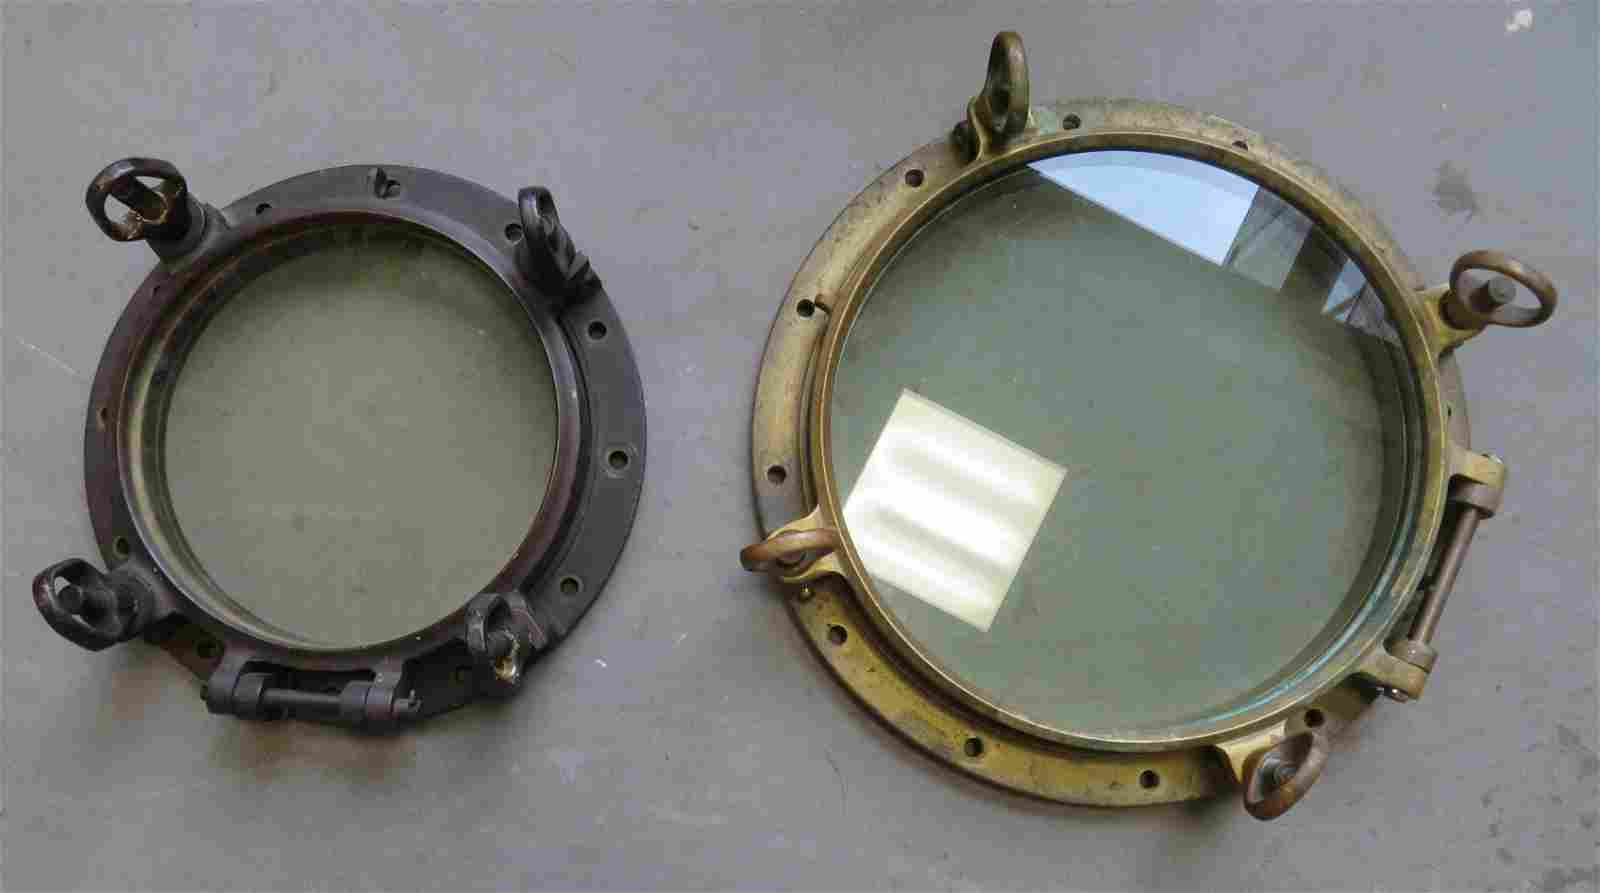 Two brass ship portholes, the smaller with natural